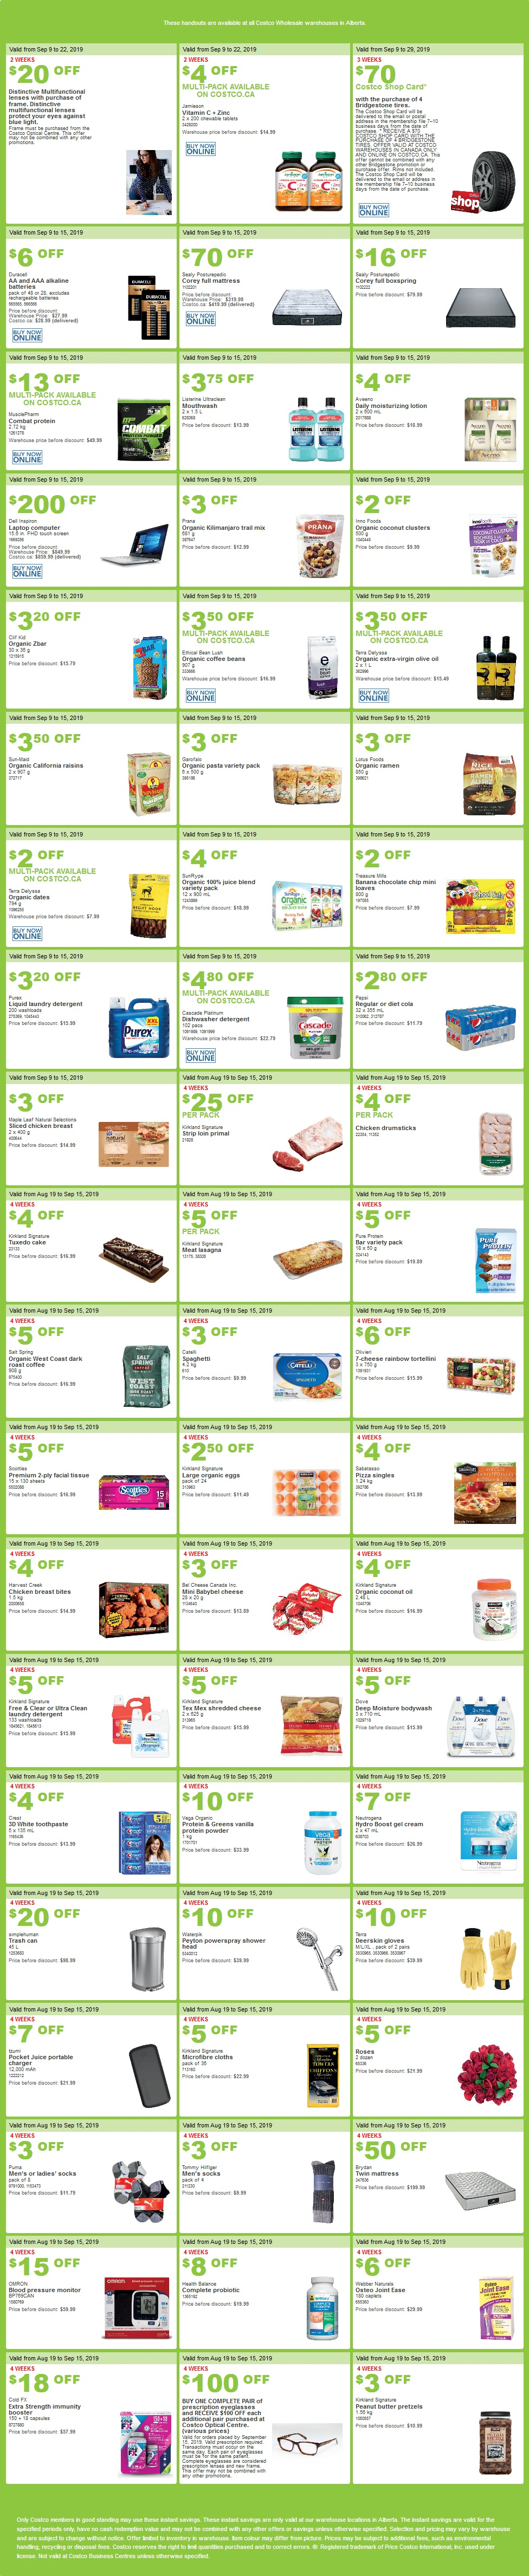 Costco Flyer for Sep 9-15, 2019 for Alberta